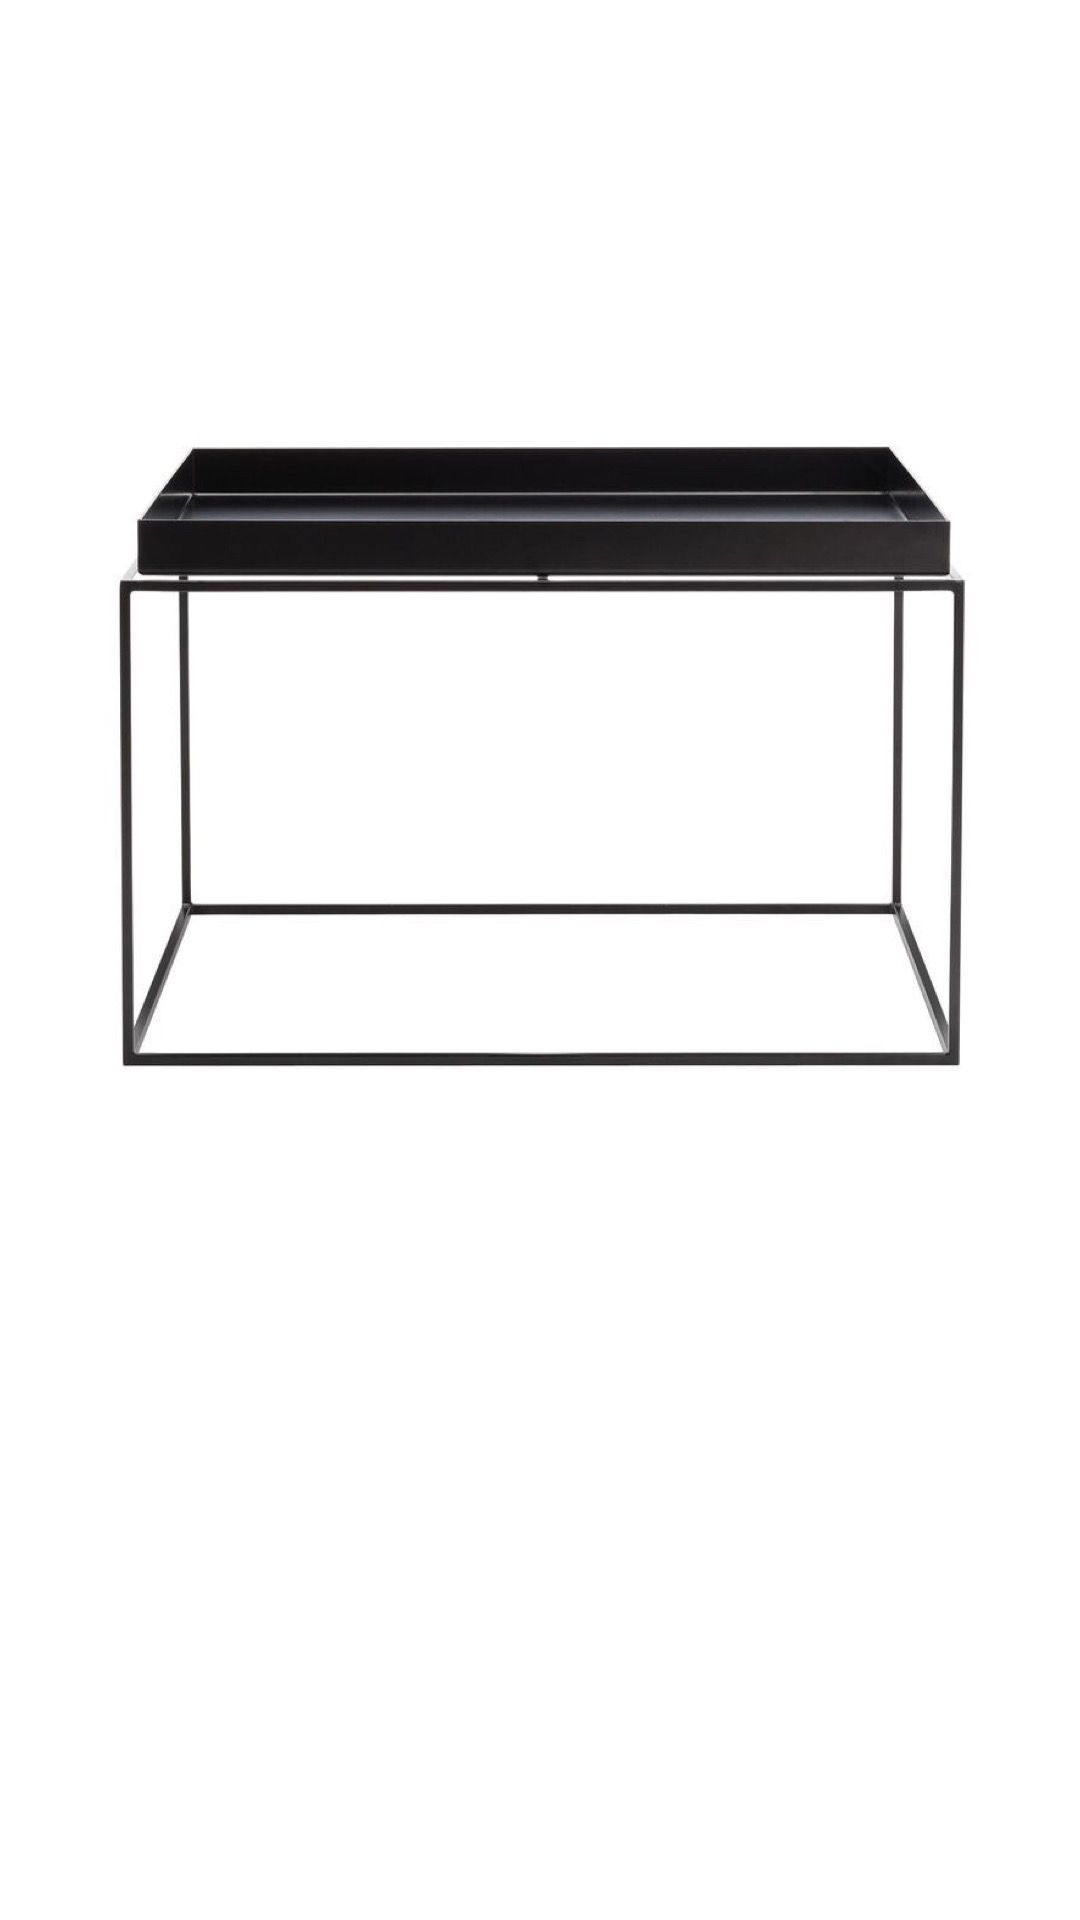 Tray Coffee Table Square H 35 Cm 60 X 60 Cm By Hay Table